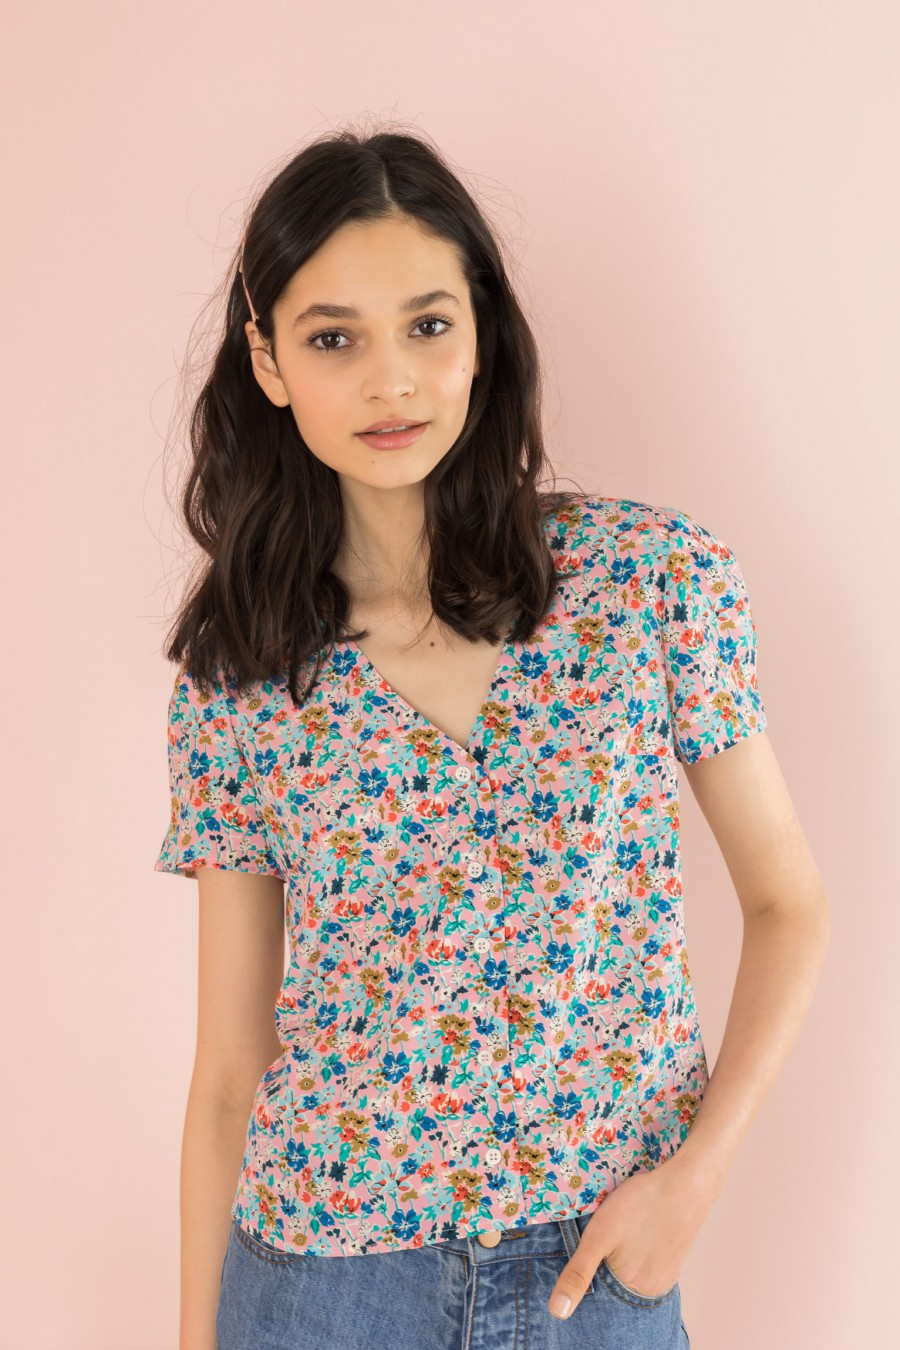 silk shirt with pattern on pink background and short sleeves